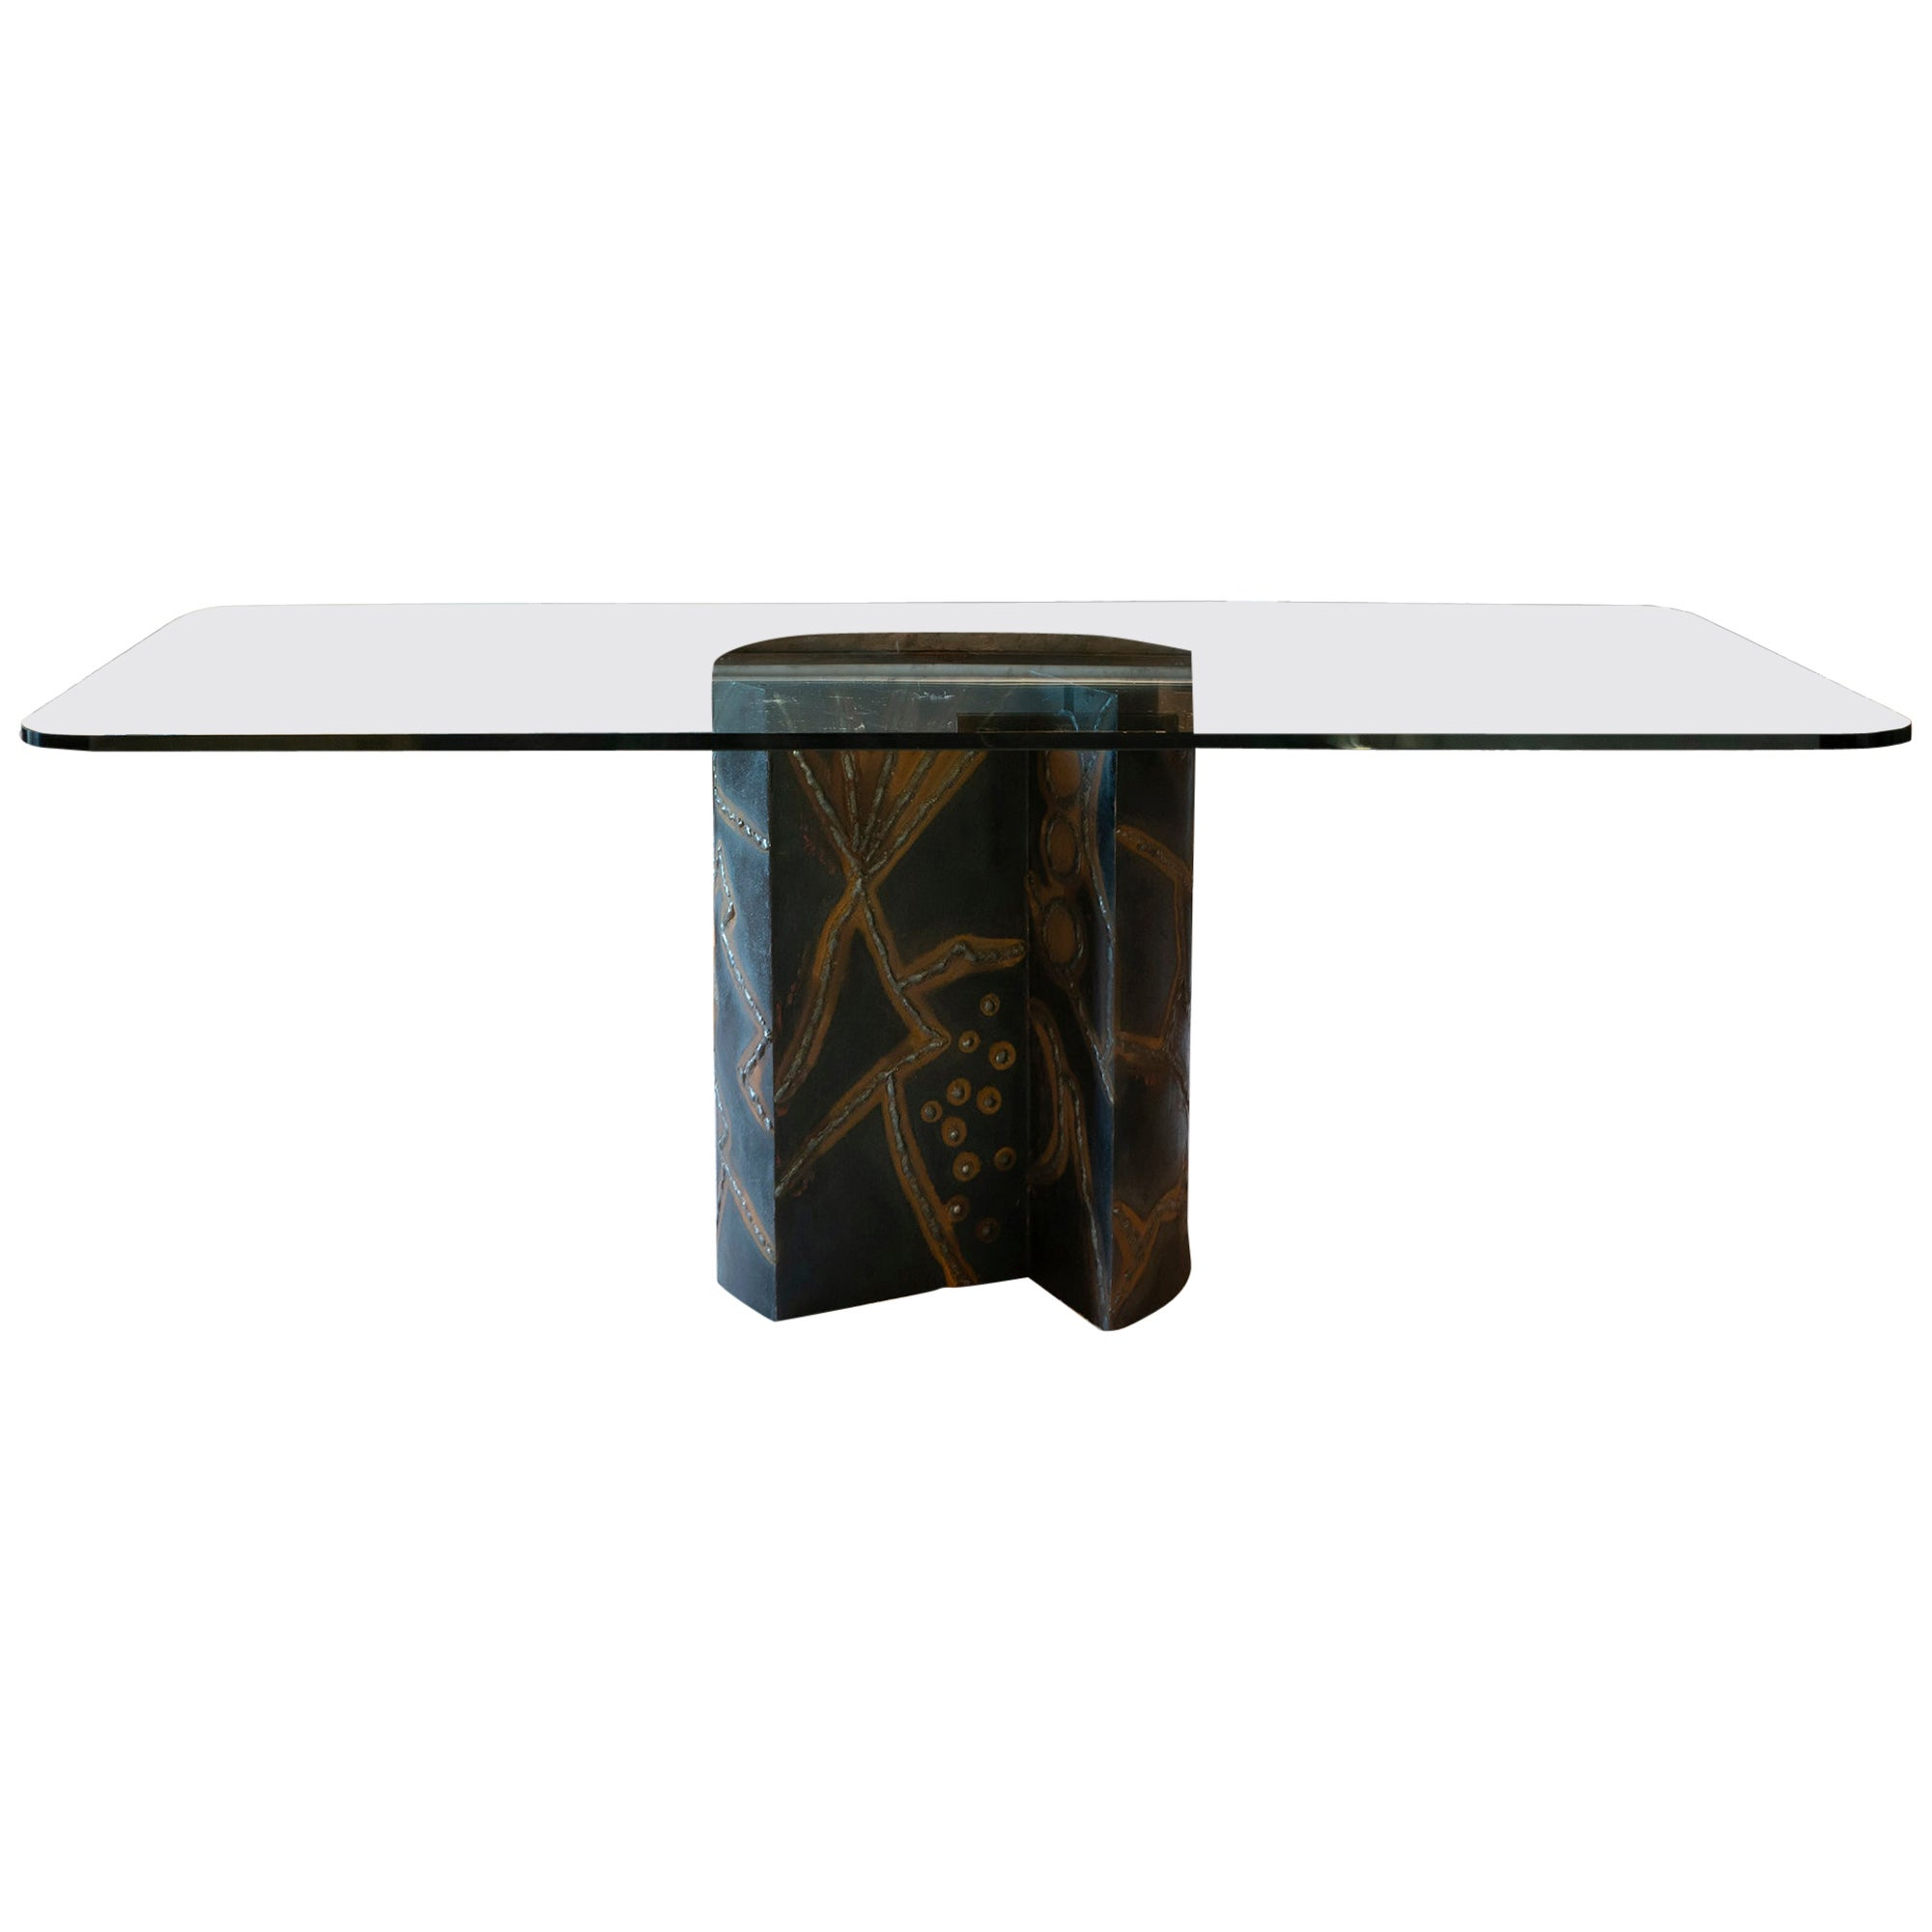 1970s Brutalist Style Italian Table, Steel Base and Tempered Glass Top